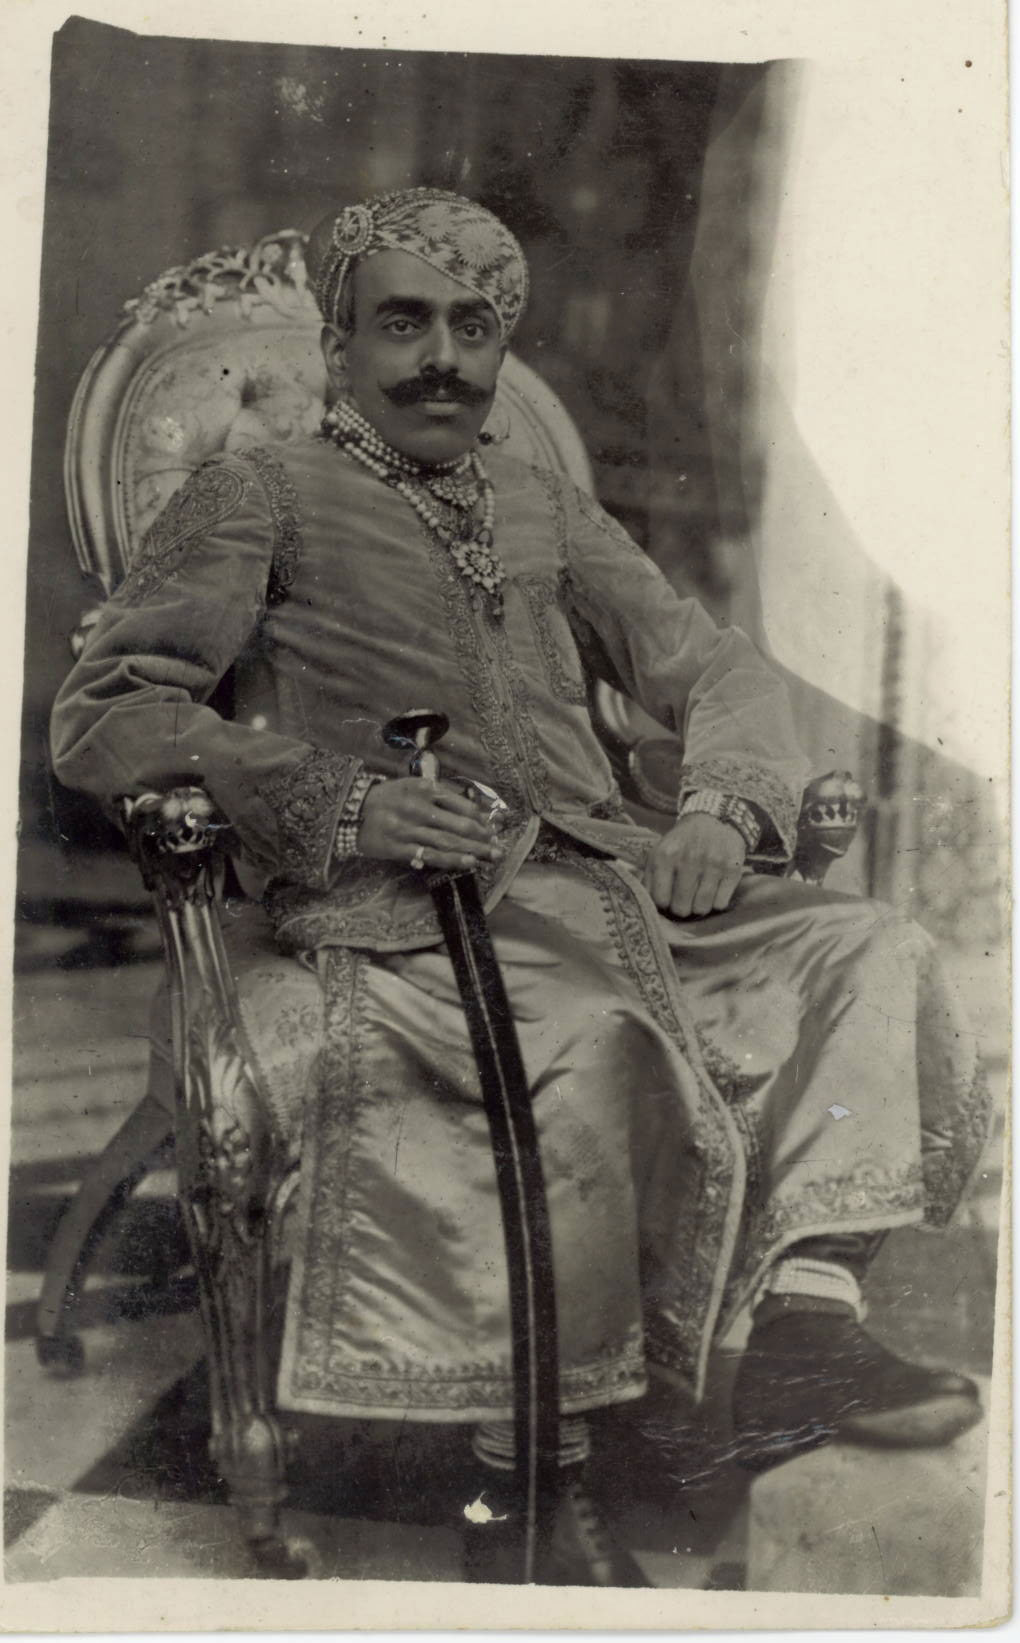 Vintage Photograph of a Royal Person, India